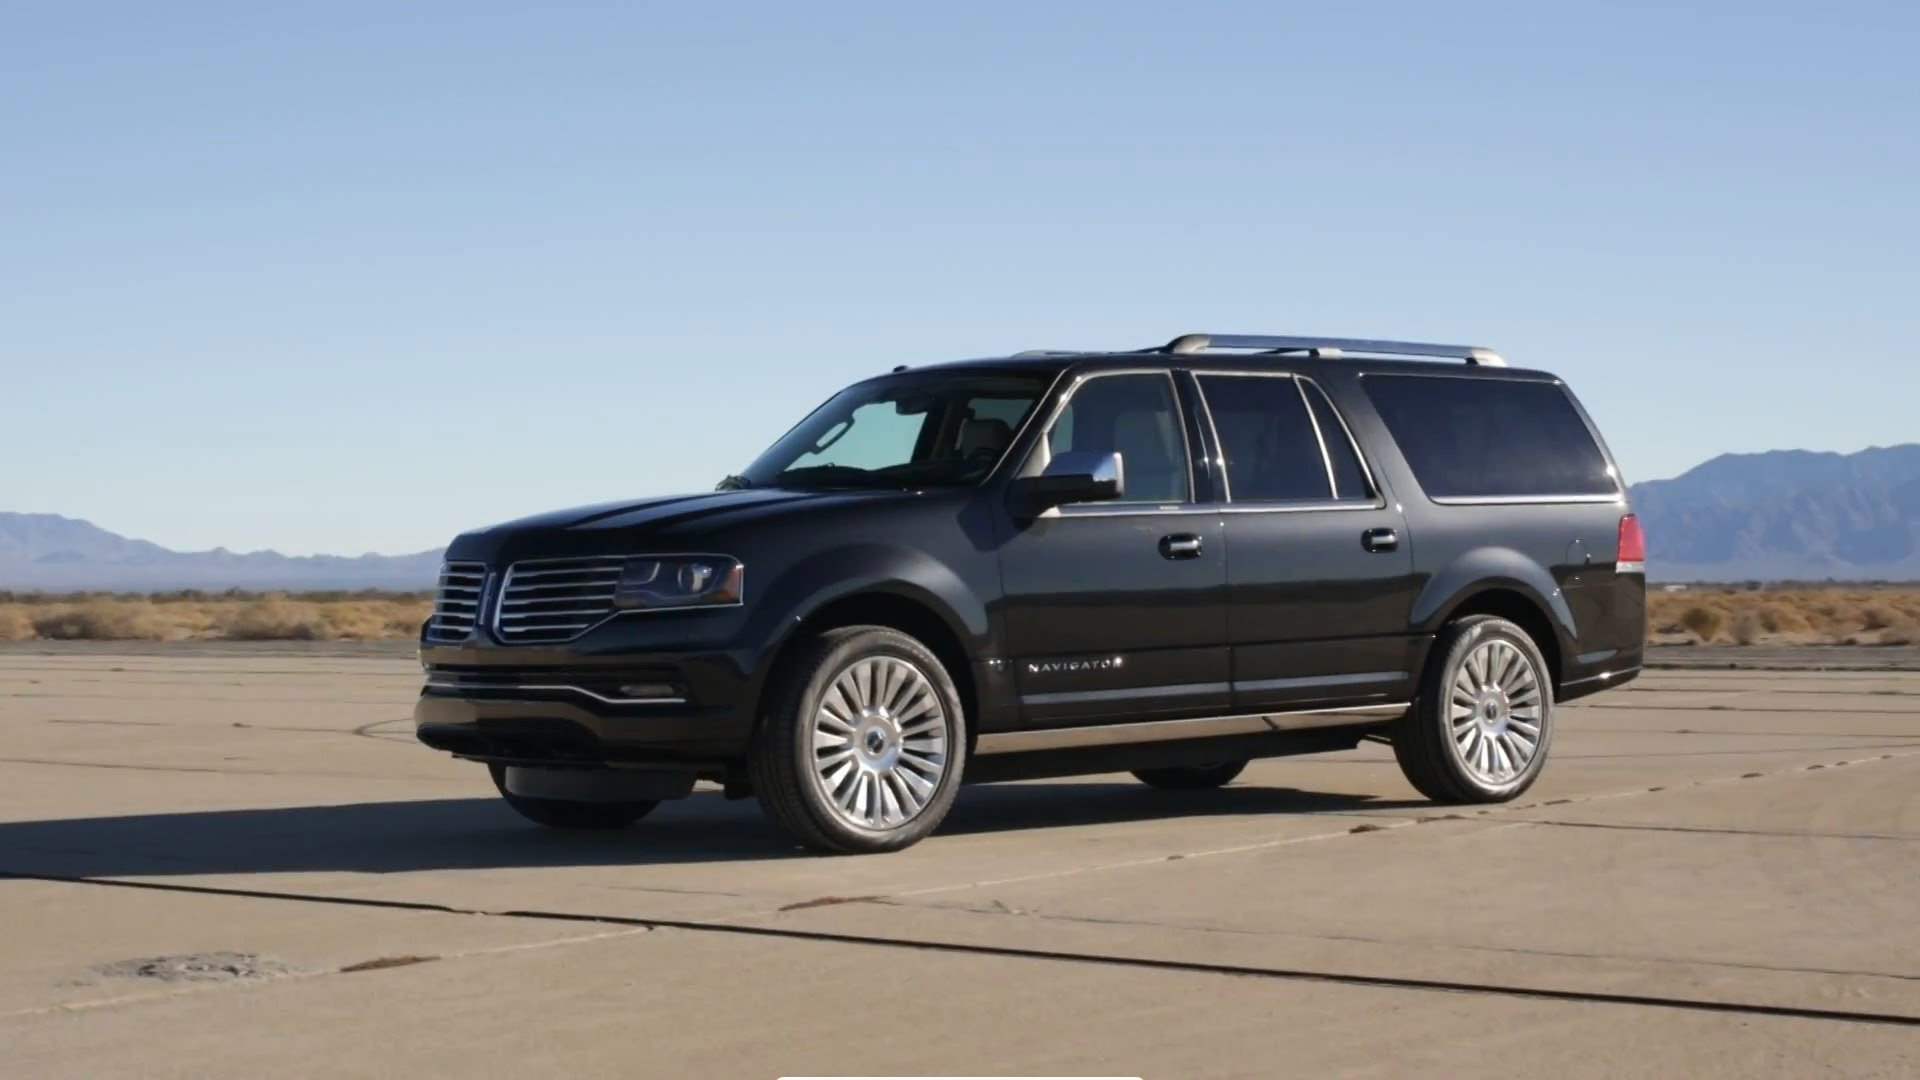 2015 lincoln navigator information and photos zombiedrive. Black Bedroom Furniture Sets. Home Design Ideas